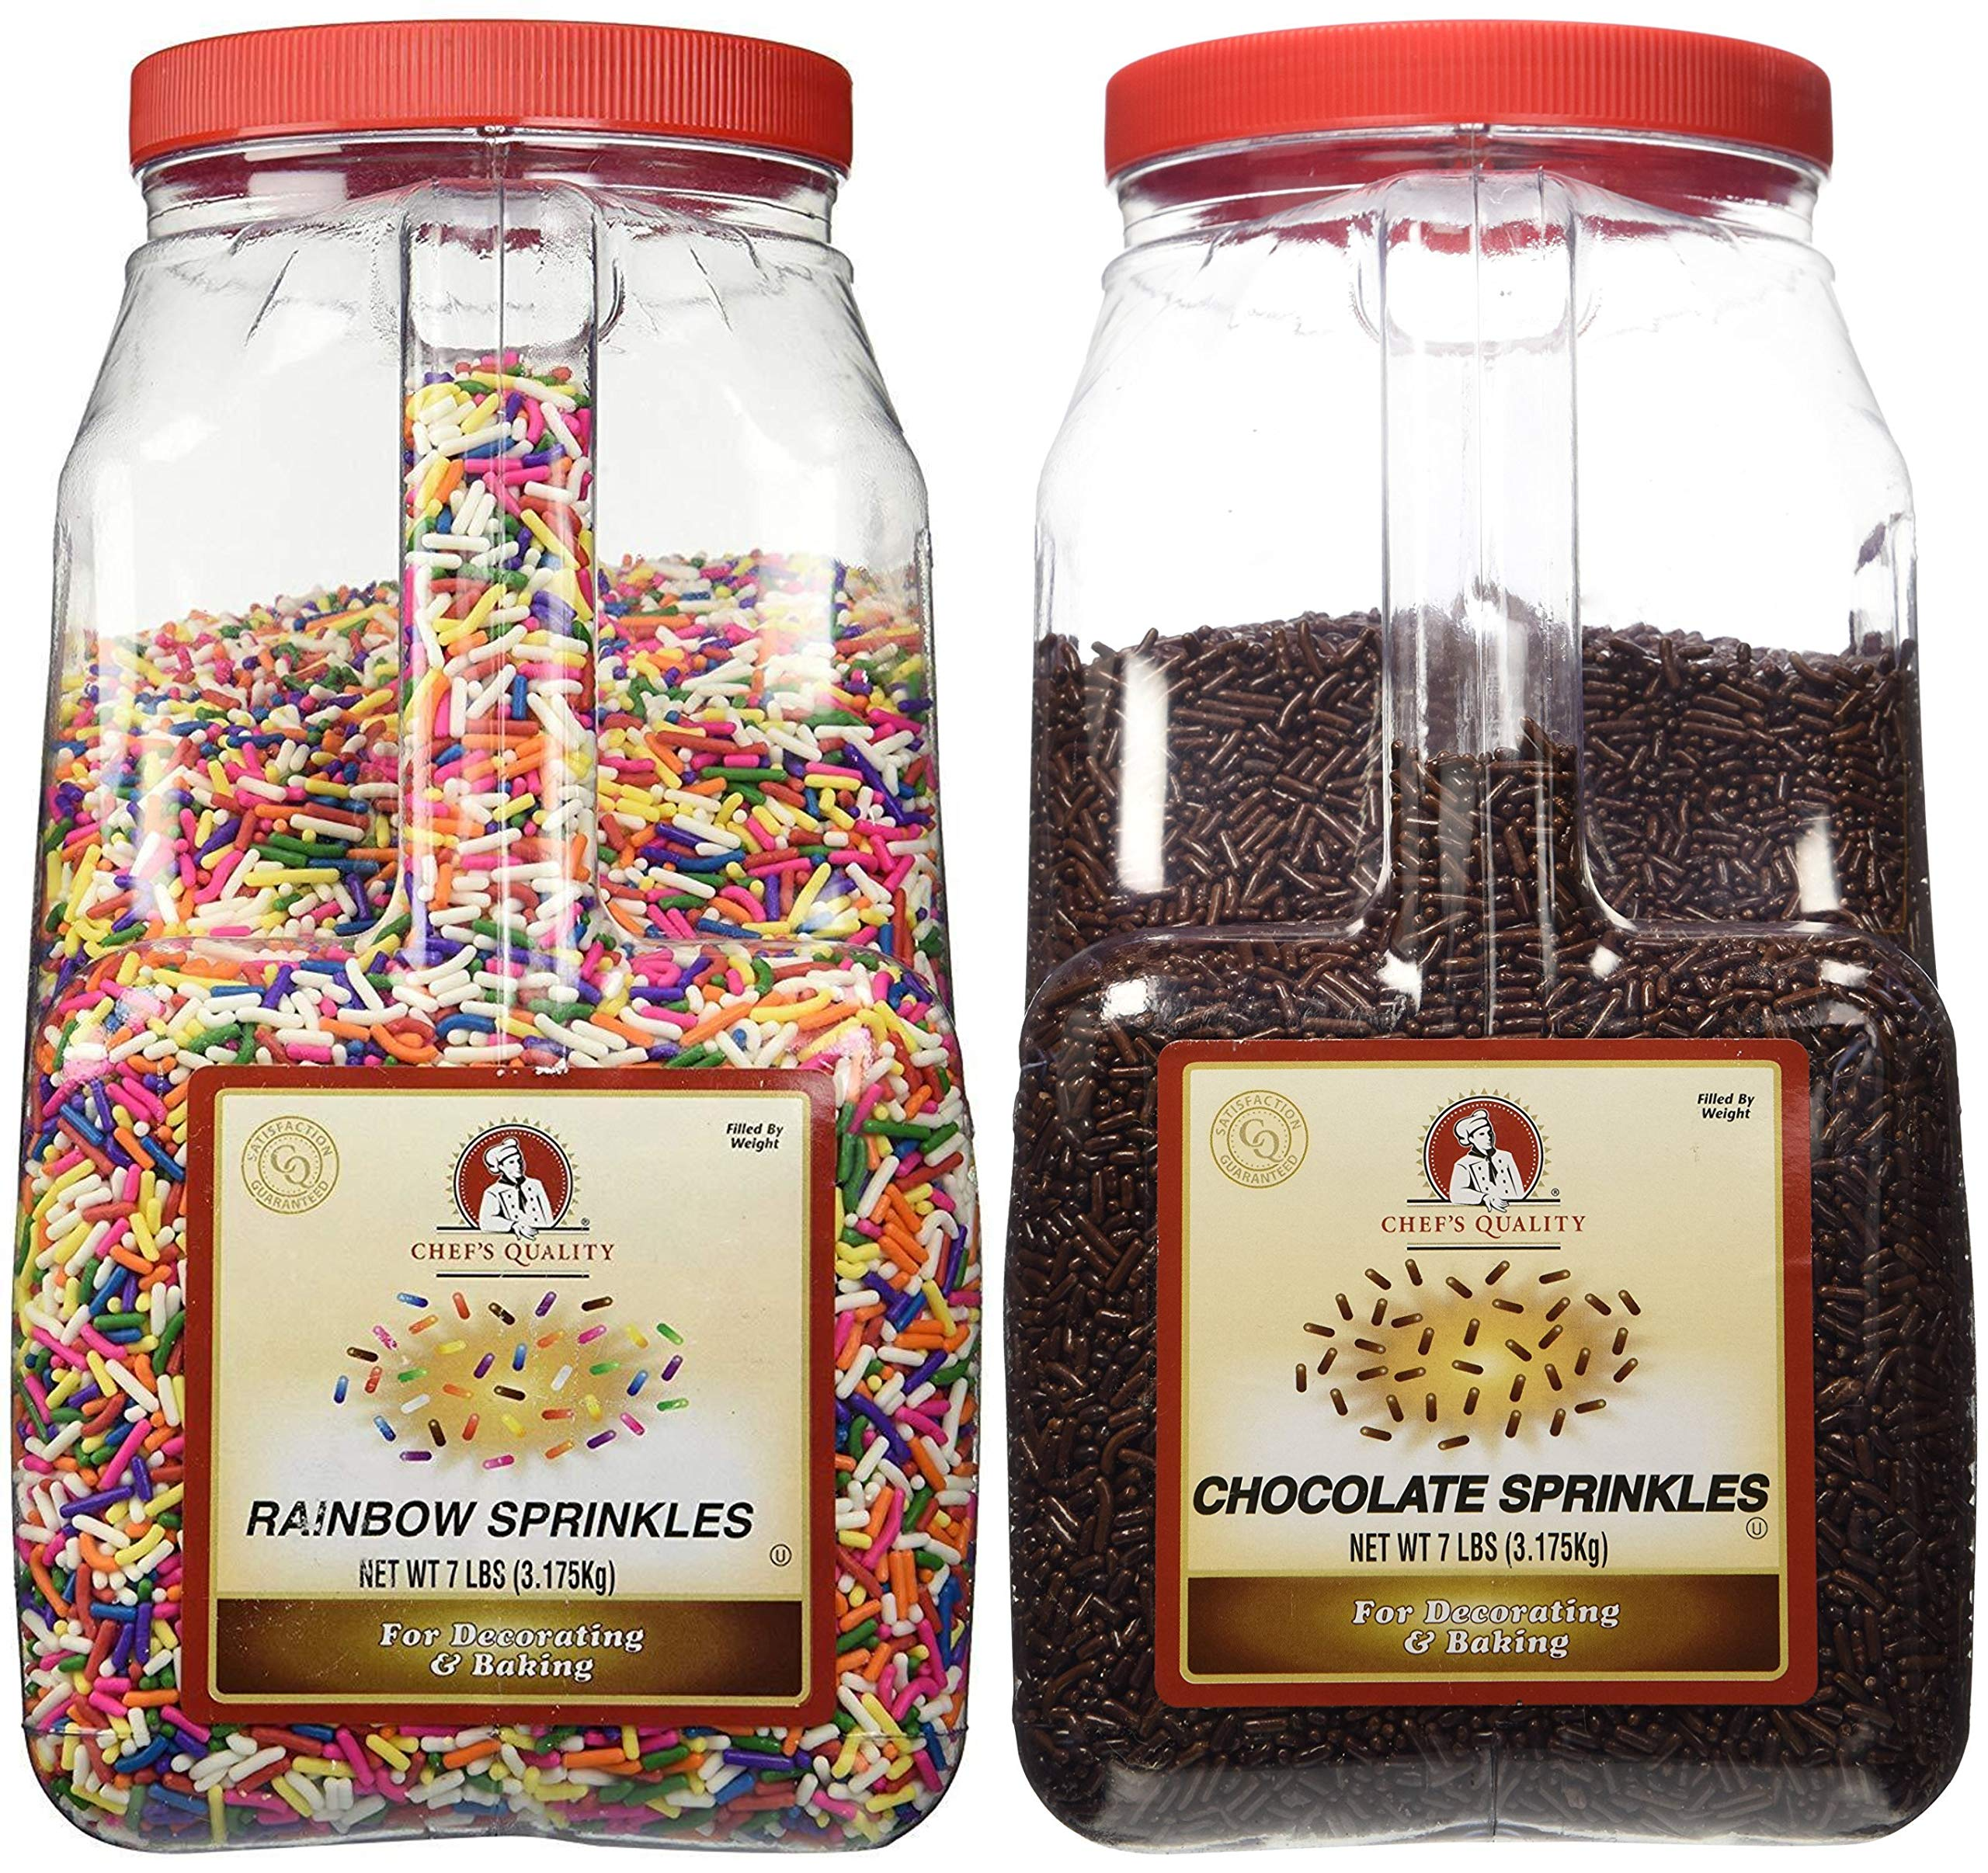 Chef's Quality Rainbow and Chocolate Sprinkles bundle 7lb. each (packed and sold by Bay Area Marketplace) Bay Area Marketplace Tote Bag Included with Purchase